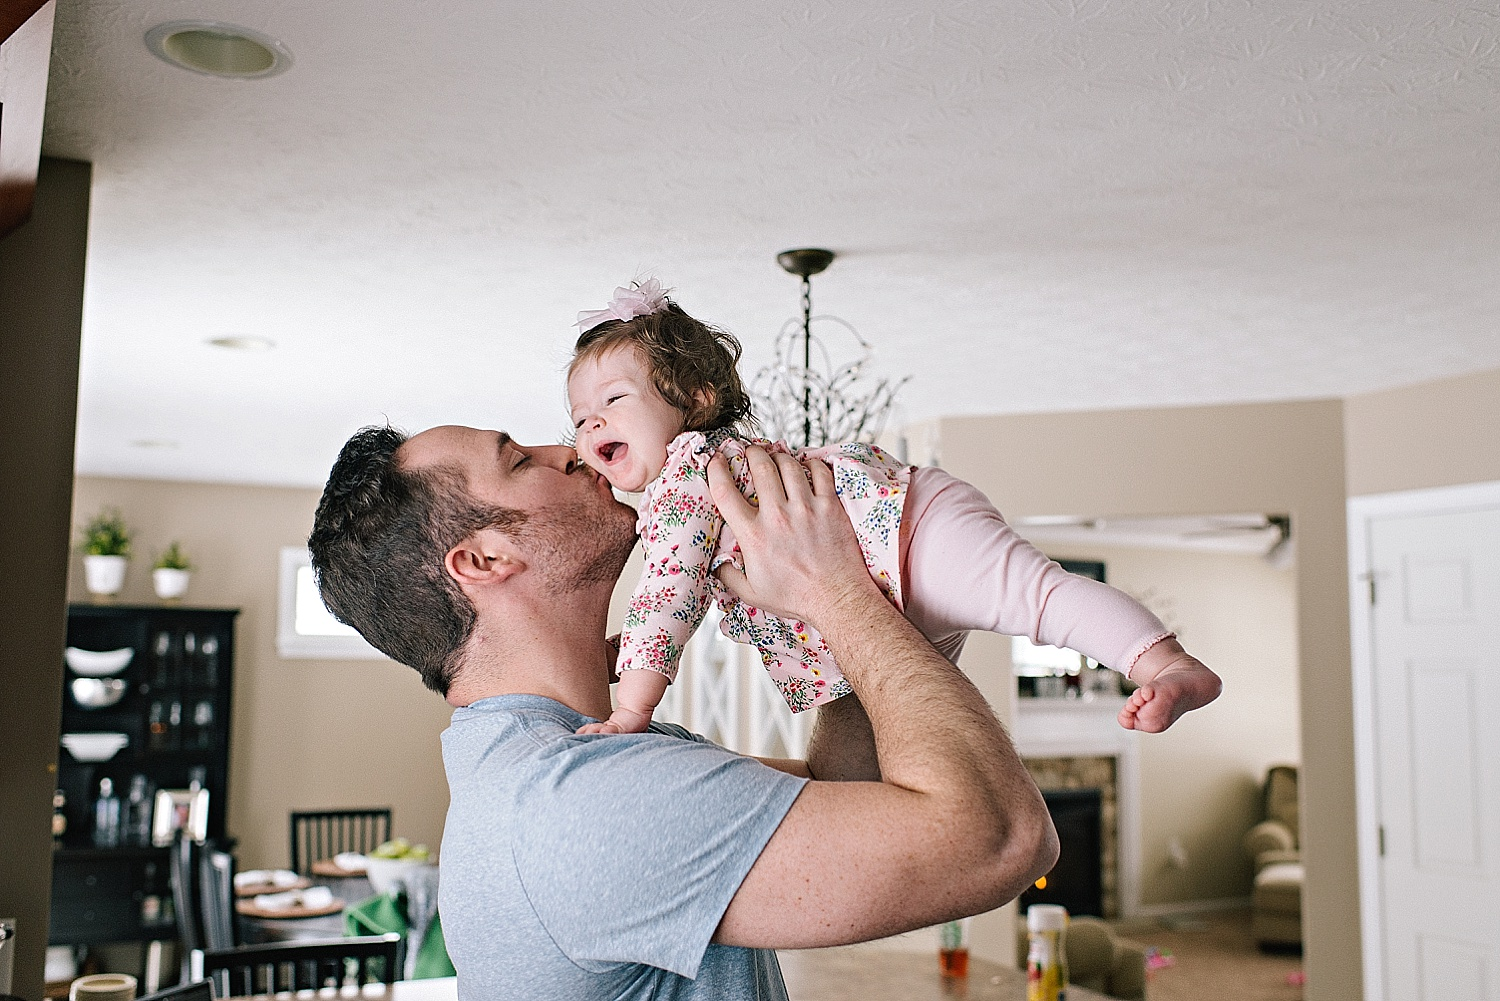 toth-famiy-lifestyle-in-home-portraits-lauren-grayson-photography-cleveland-child-photographer